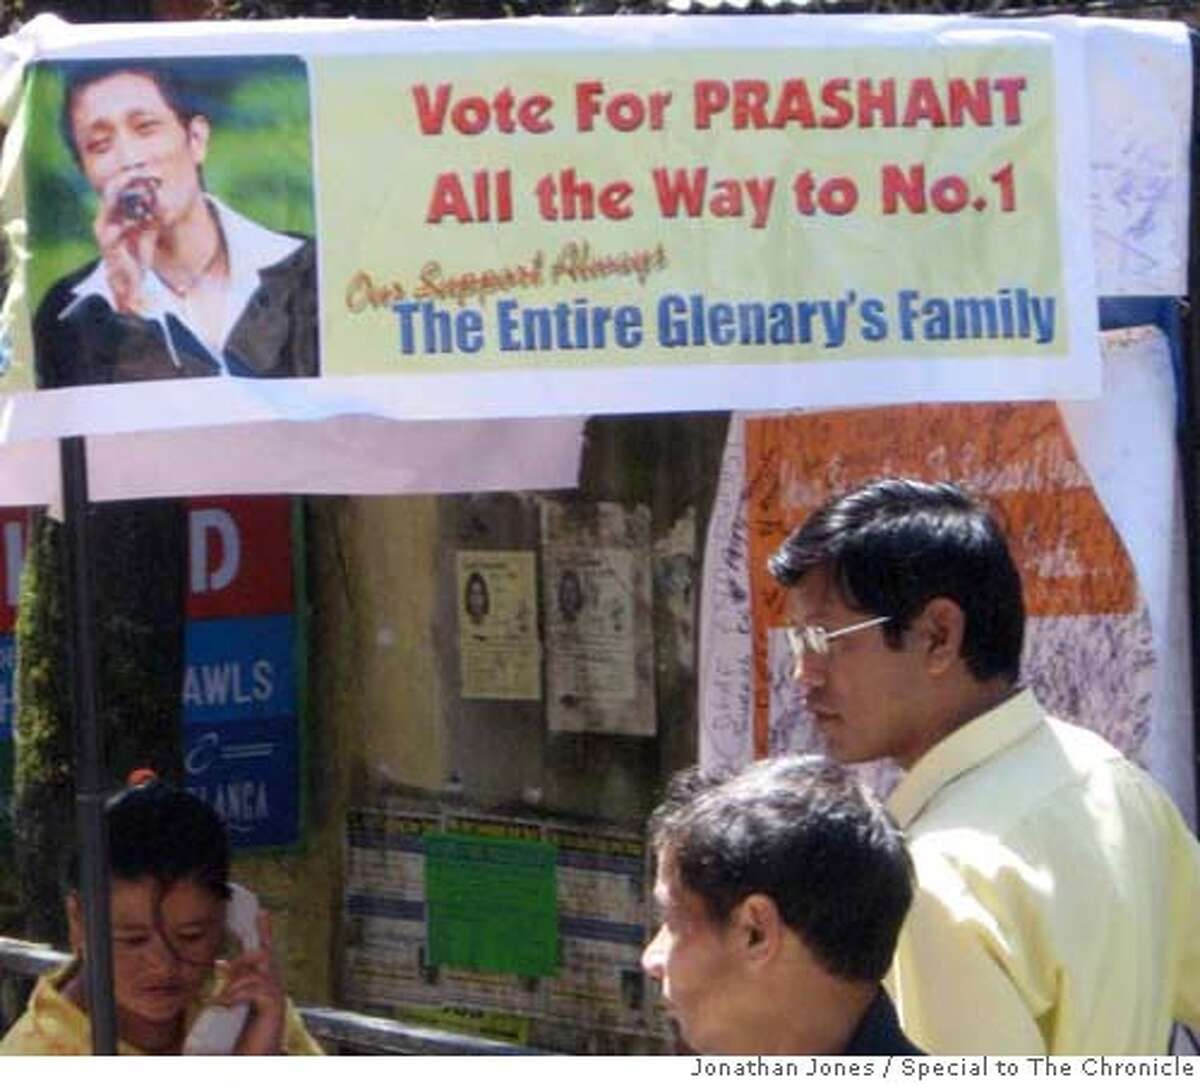 india25_ph1.JPG A calling booth to vote for Prashant, one of the final contestants in Indian Idol in Darjeeling, India. Jonathan Jones / Special to The Chronicle MANDATORY CREDIT FOR PHOTOG AND SAN FRANCISCO CHRONICLE/NO SALES-MAGS OUT